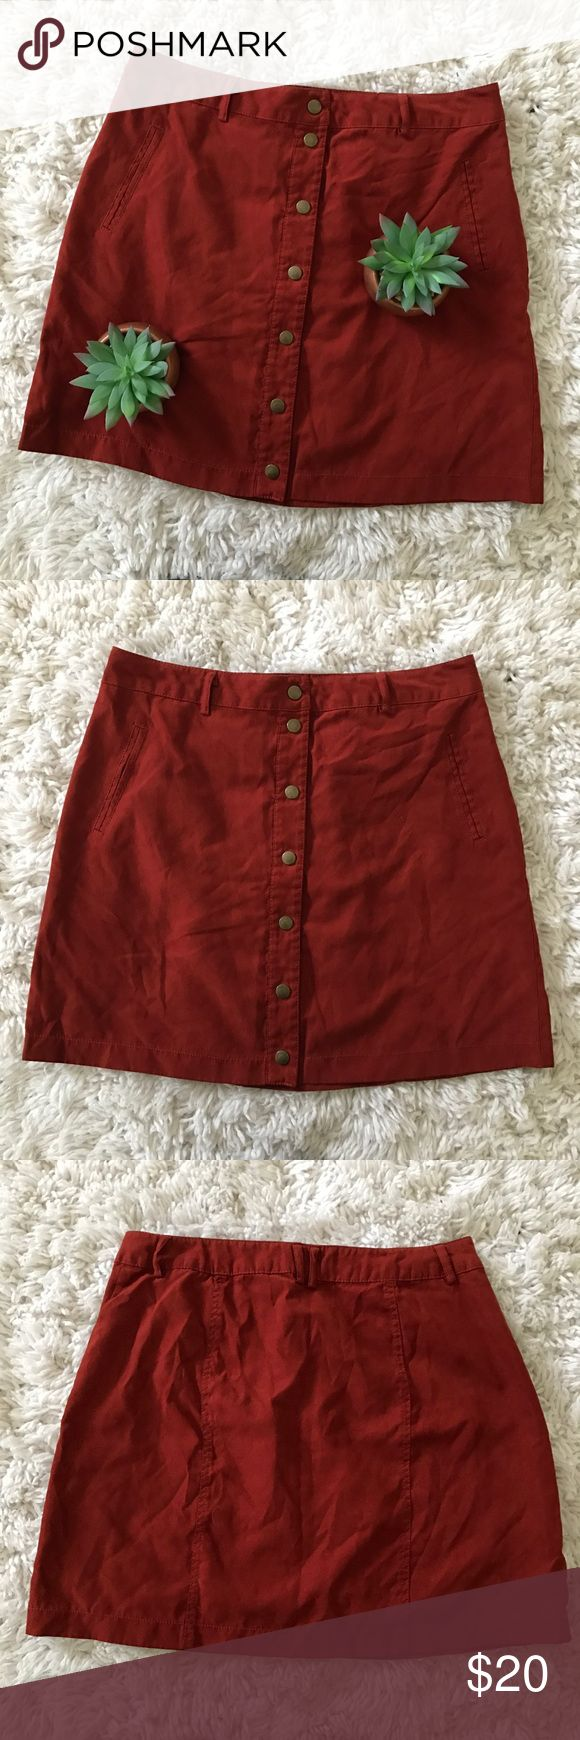 Forever 21 • Button Down Skirt Forever 21 • Button down, mini skirt from Forever 21. Burnt orange in color. Silk linking inside. Buttons are snaps. Faux suede material. Great condition & perfect for you hipsters out there.   ❄️ No trades. Feel free to make an offer. Bundle items for 15% discount. ❄️ Forever 21 Skirts Mini